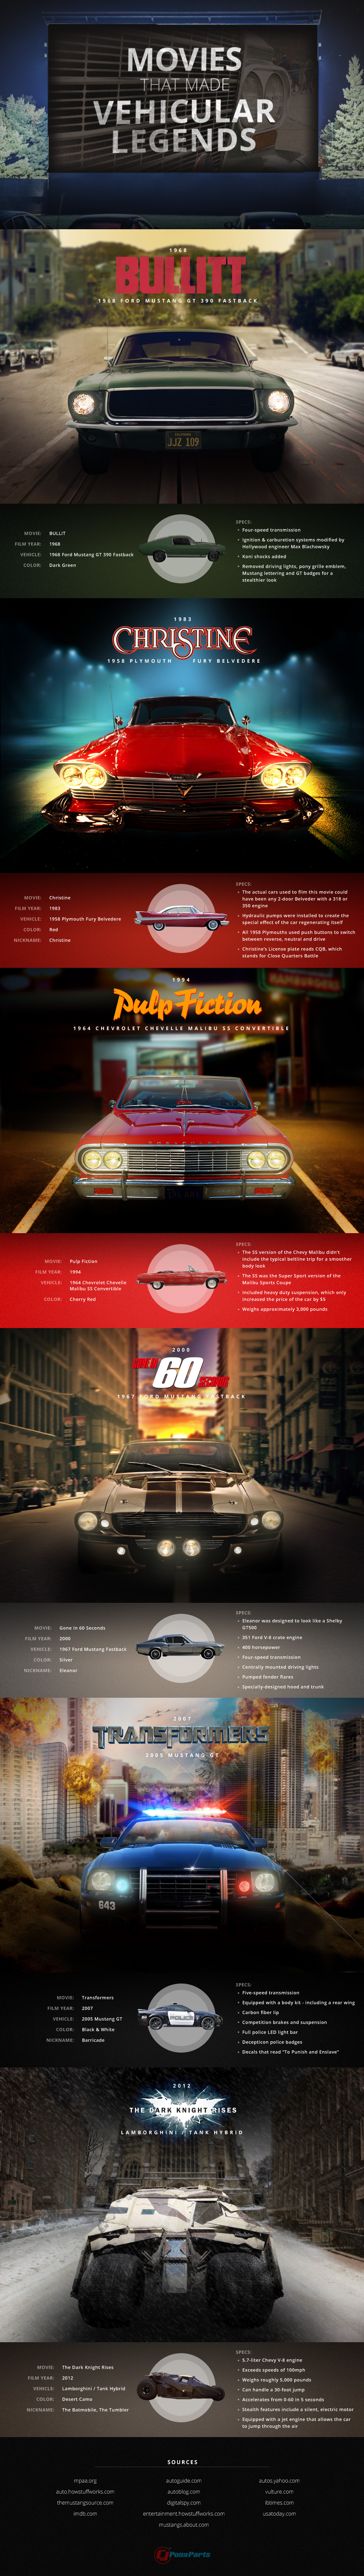 movies-that-made-vehicular-legends_5266ae7311bf9